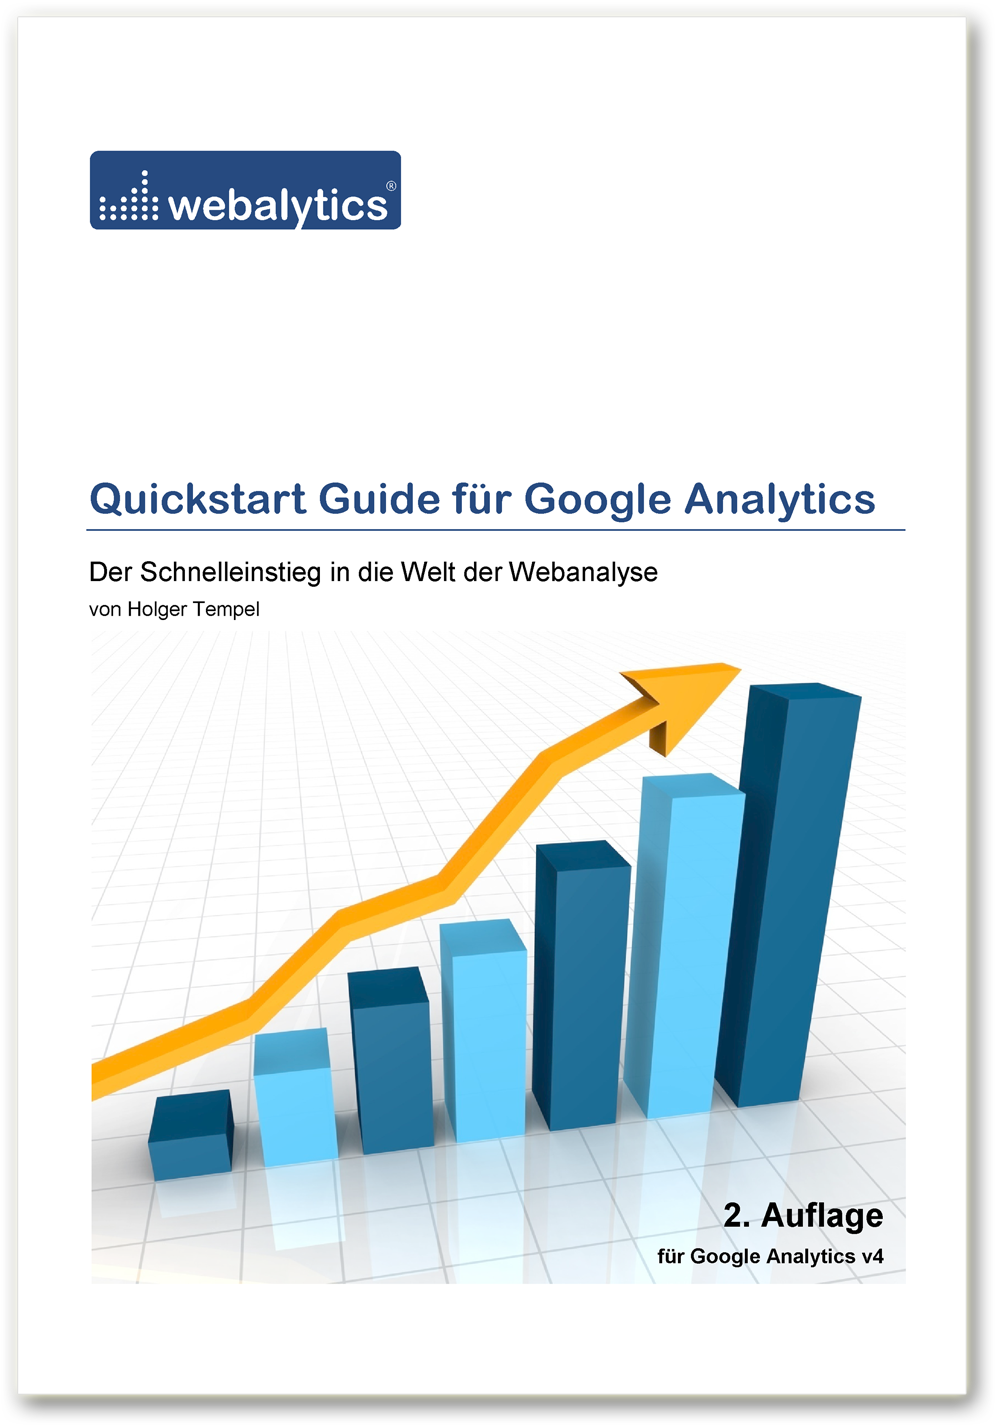 2. Auflage - Quickstat Guide für Google Analytics v4